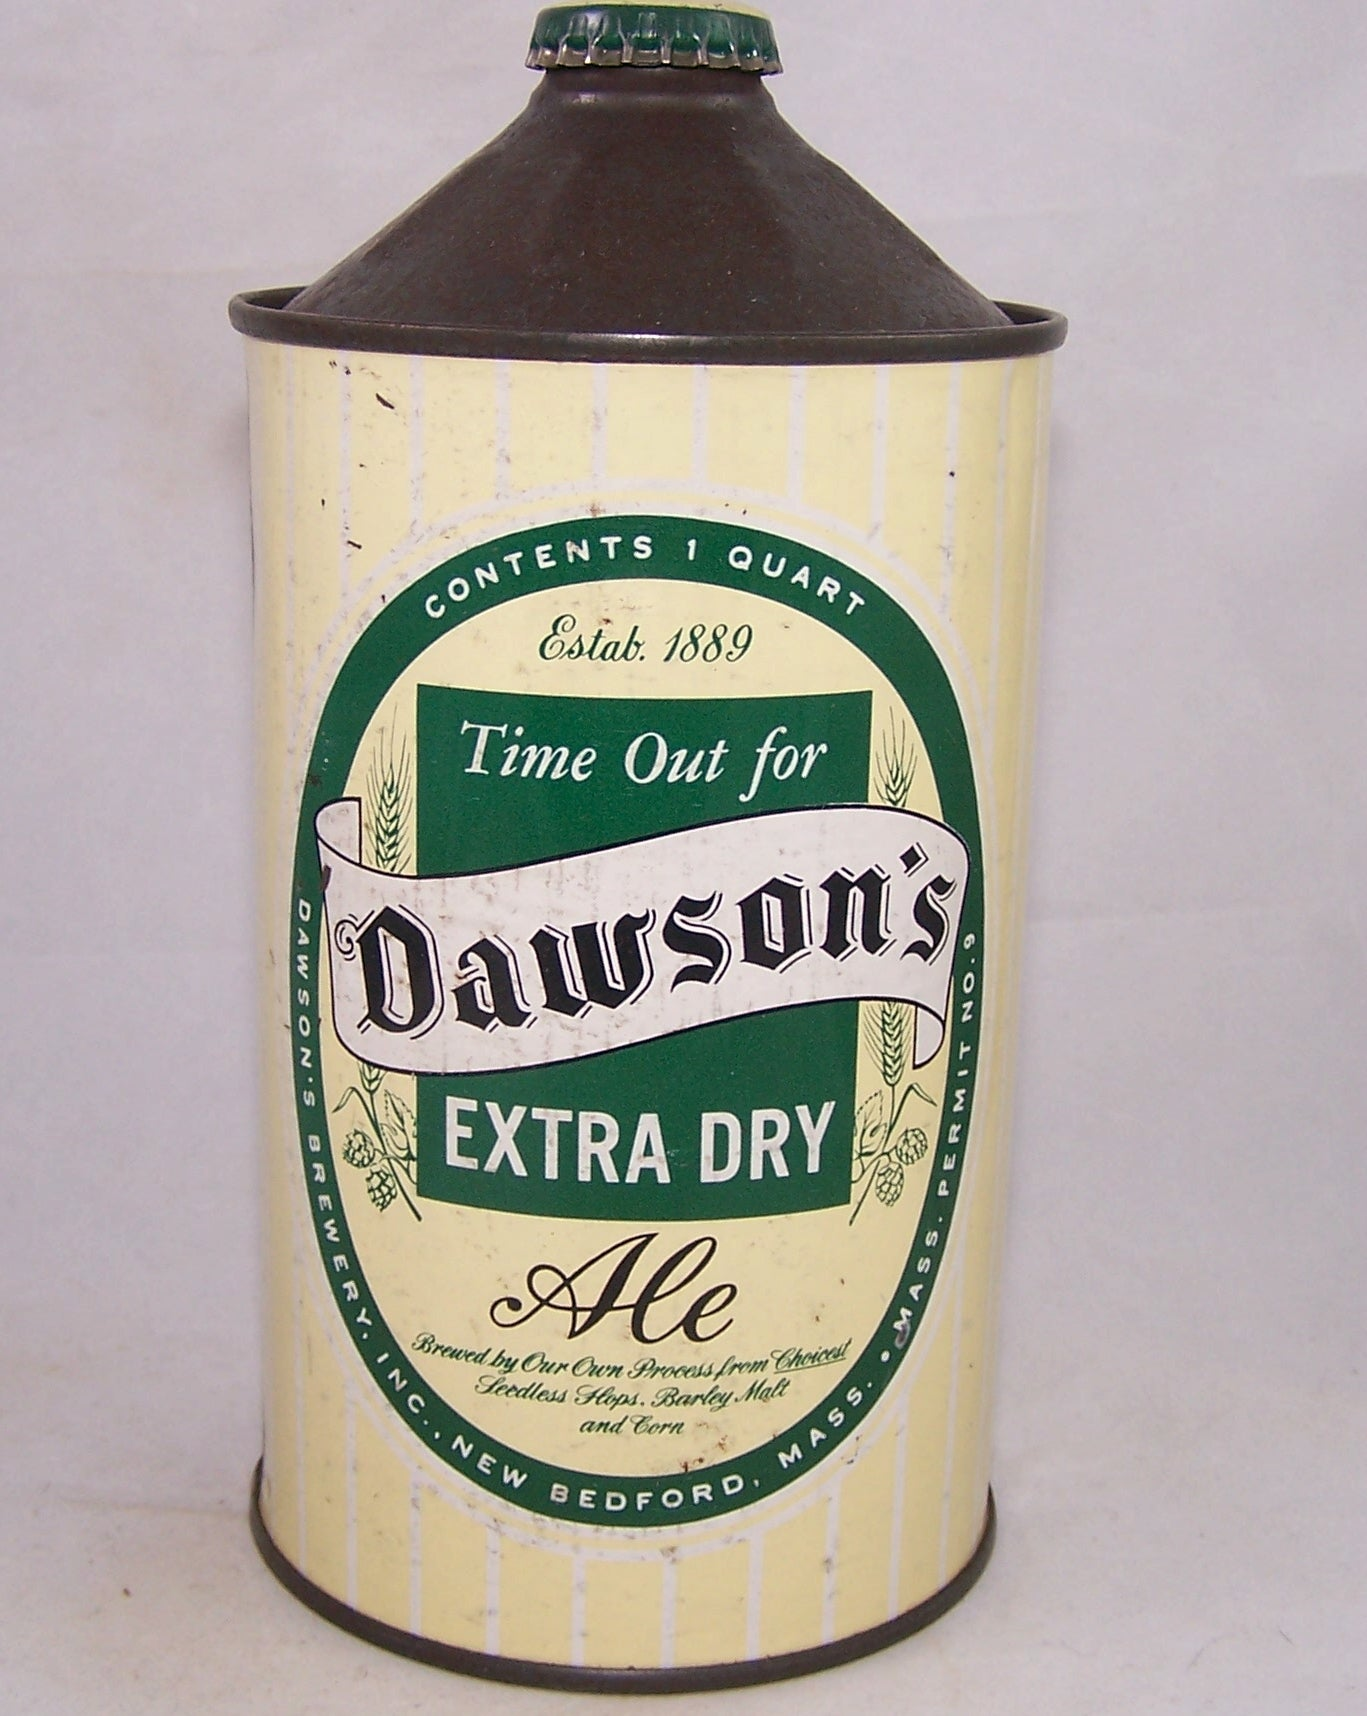 Dawson's Extra Dry Ale. USBC 206-16, Grade 1 Sold on 02/25/18